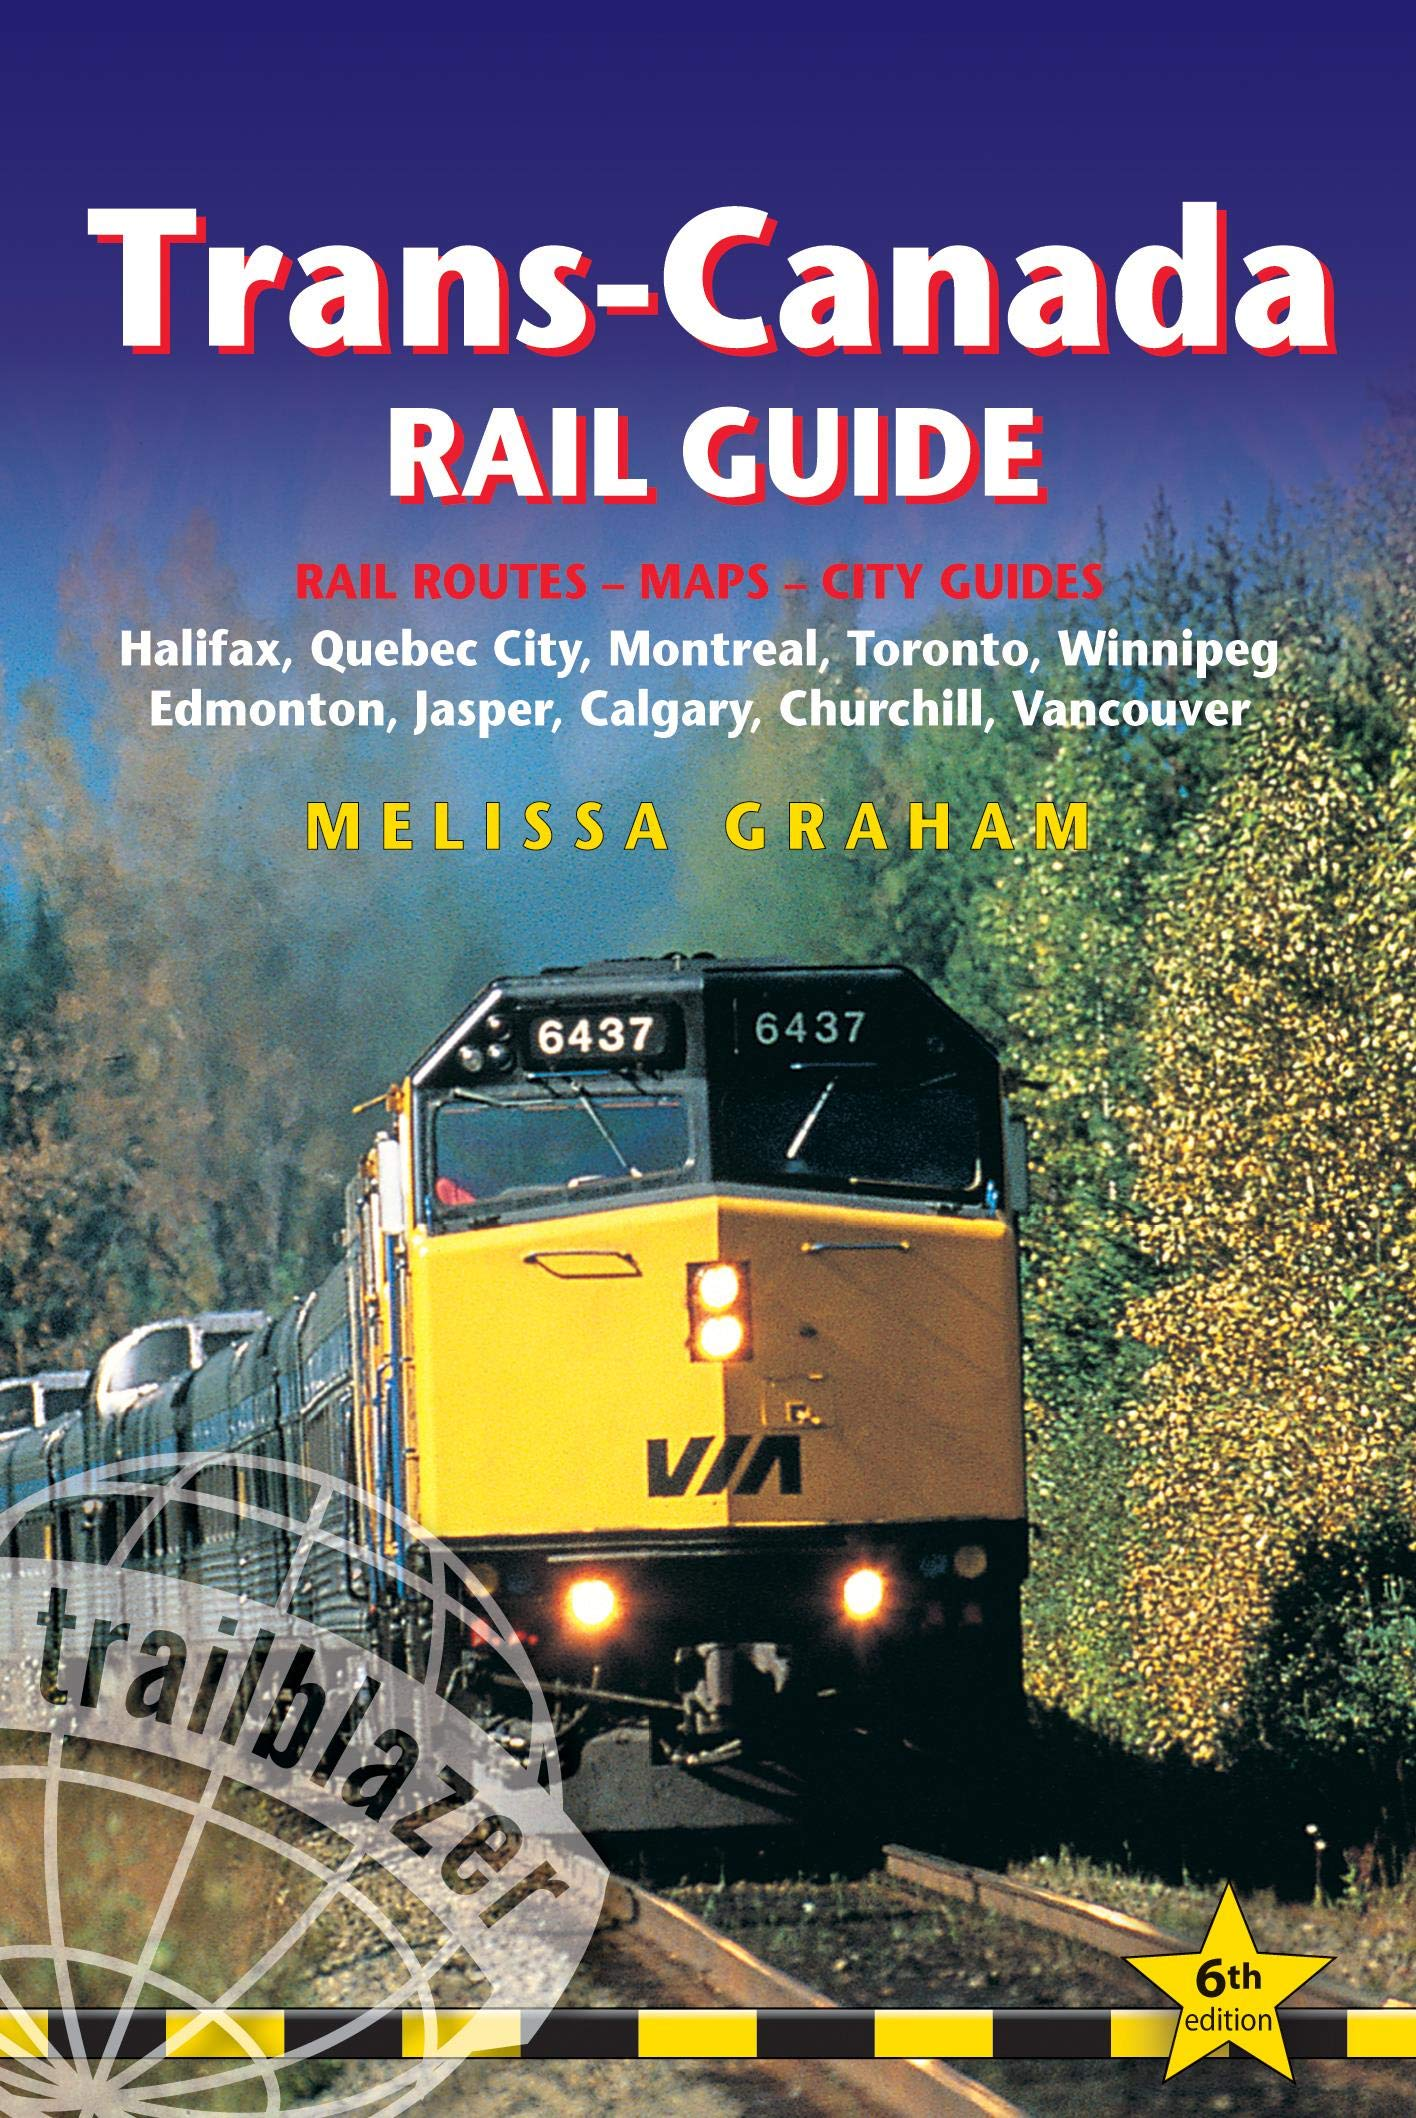 Trans-Canada Rail Guide, 5th: includes city guides to Halifax